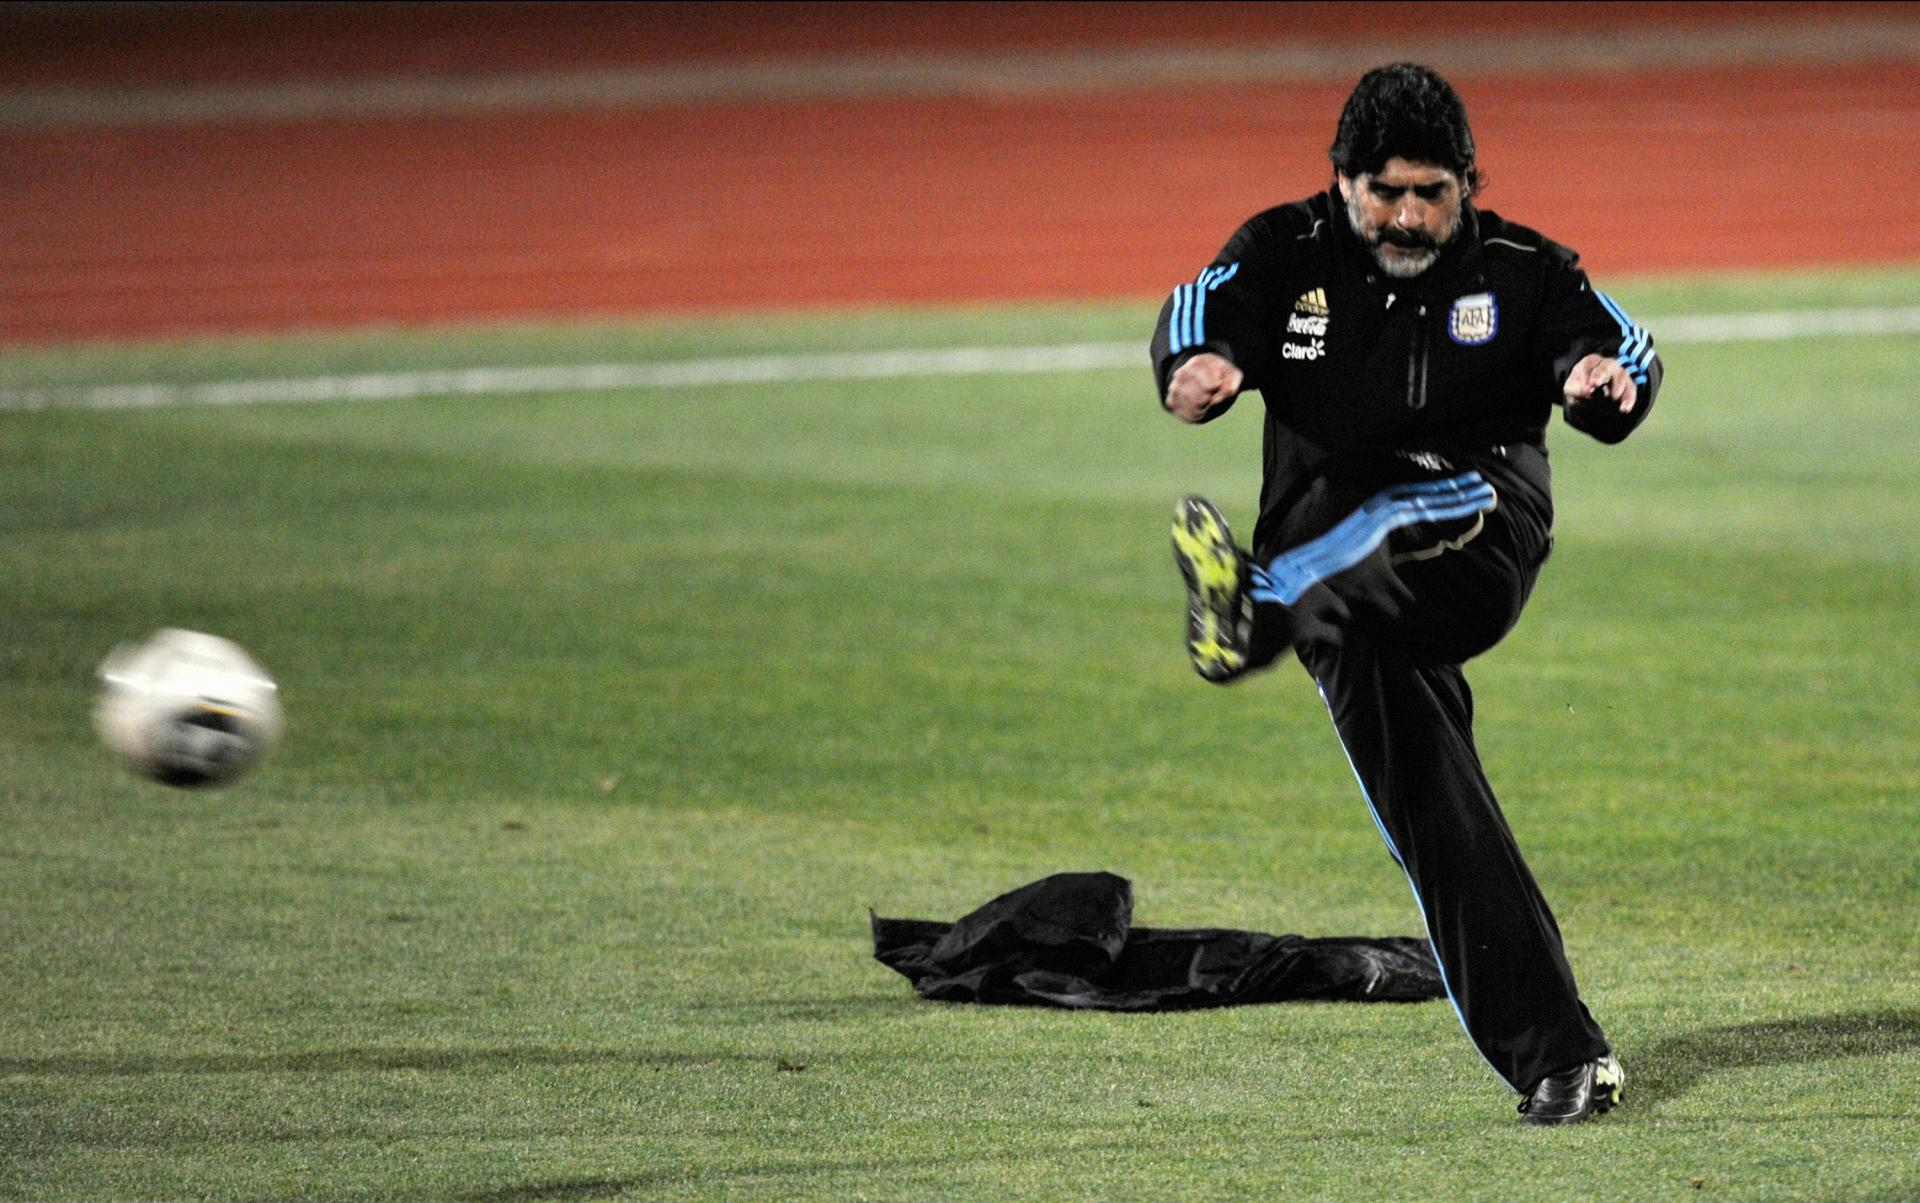 Maradona took to coaching in his later years, though success eluded him. Photo: AFP